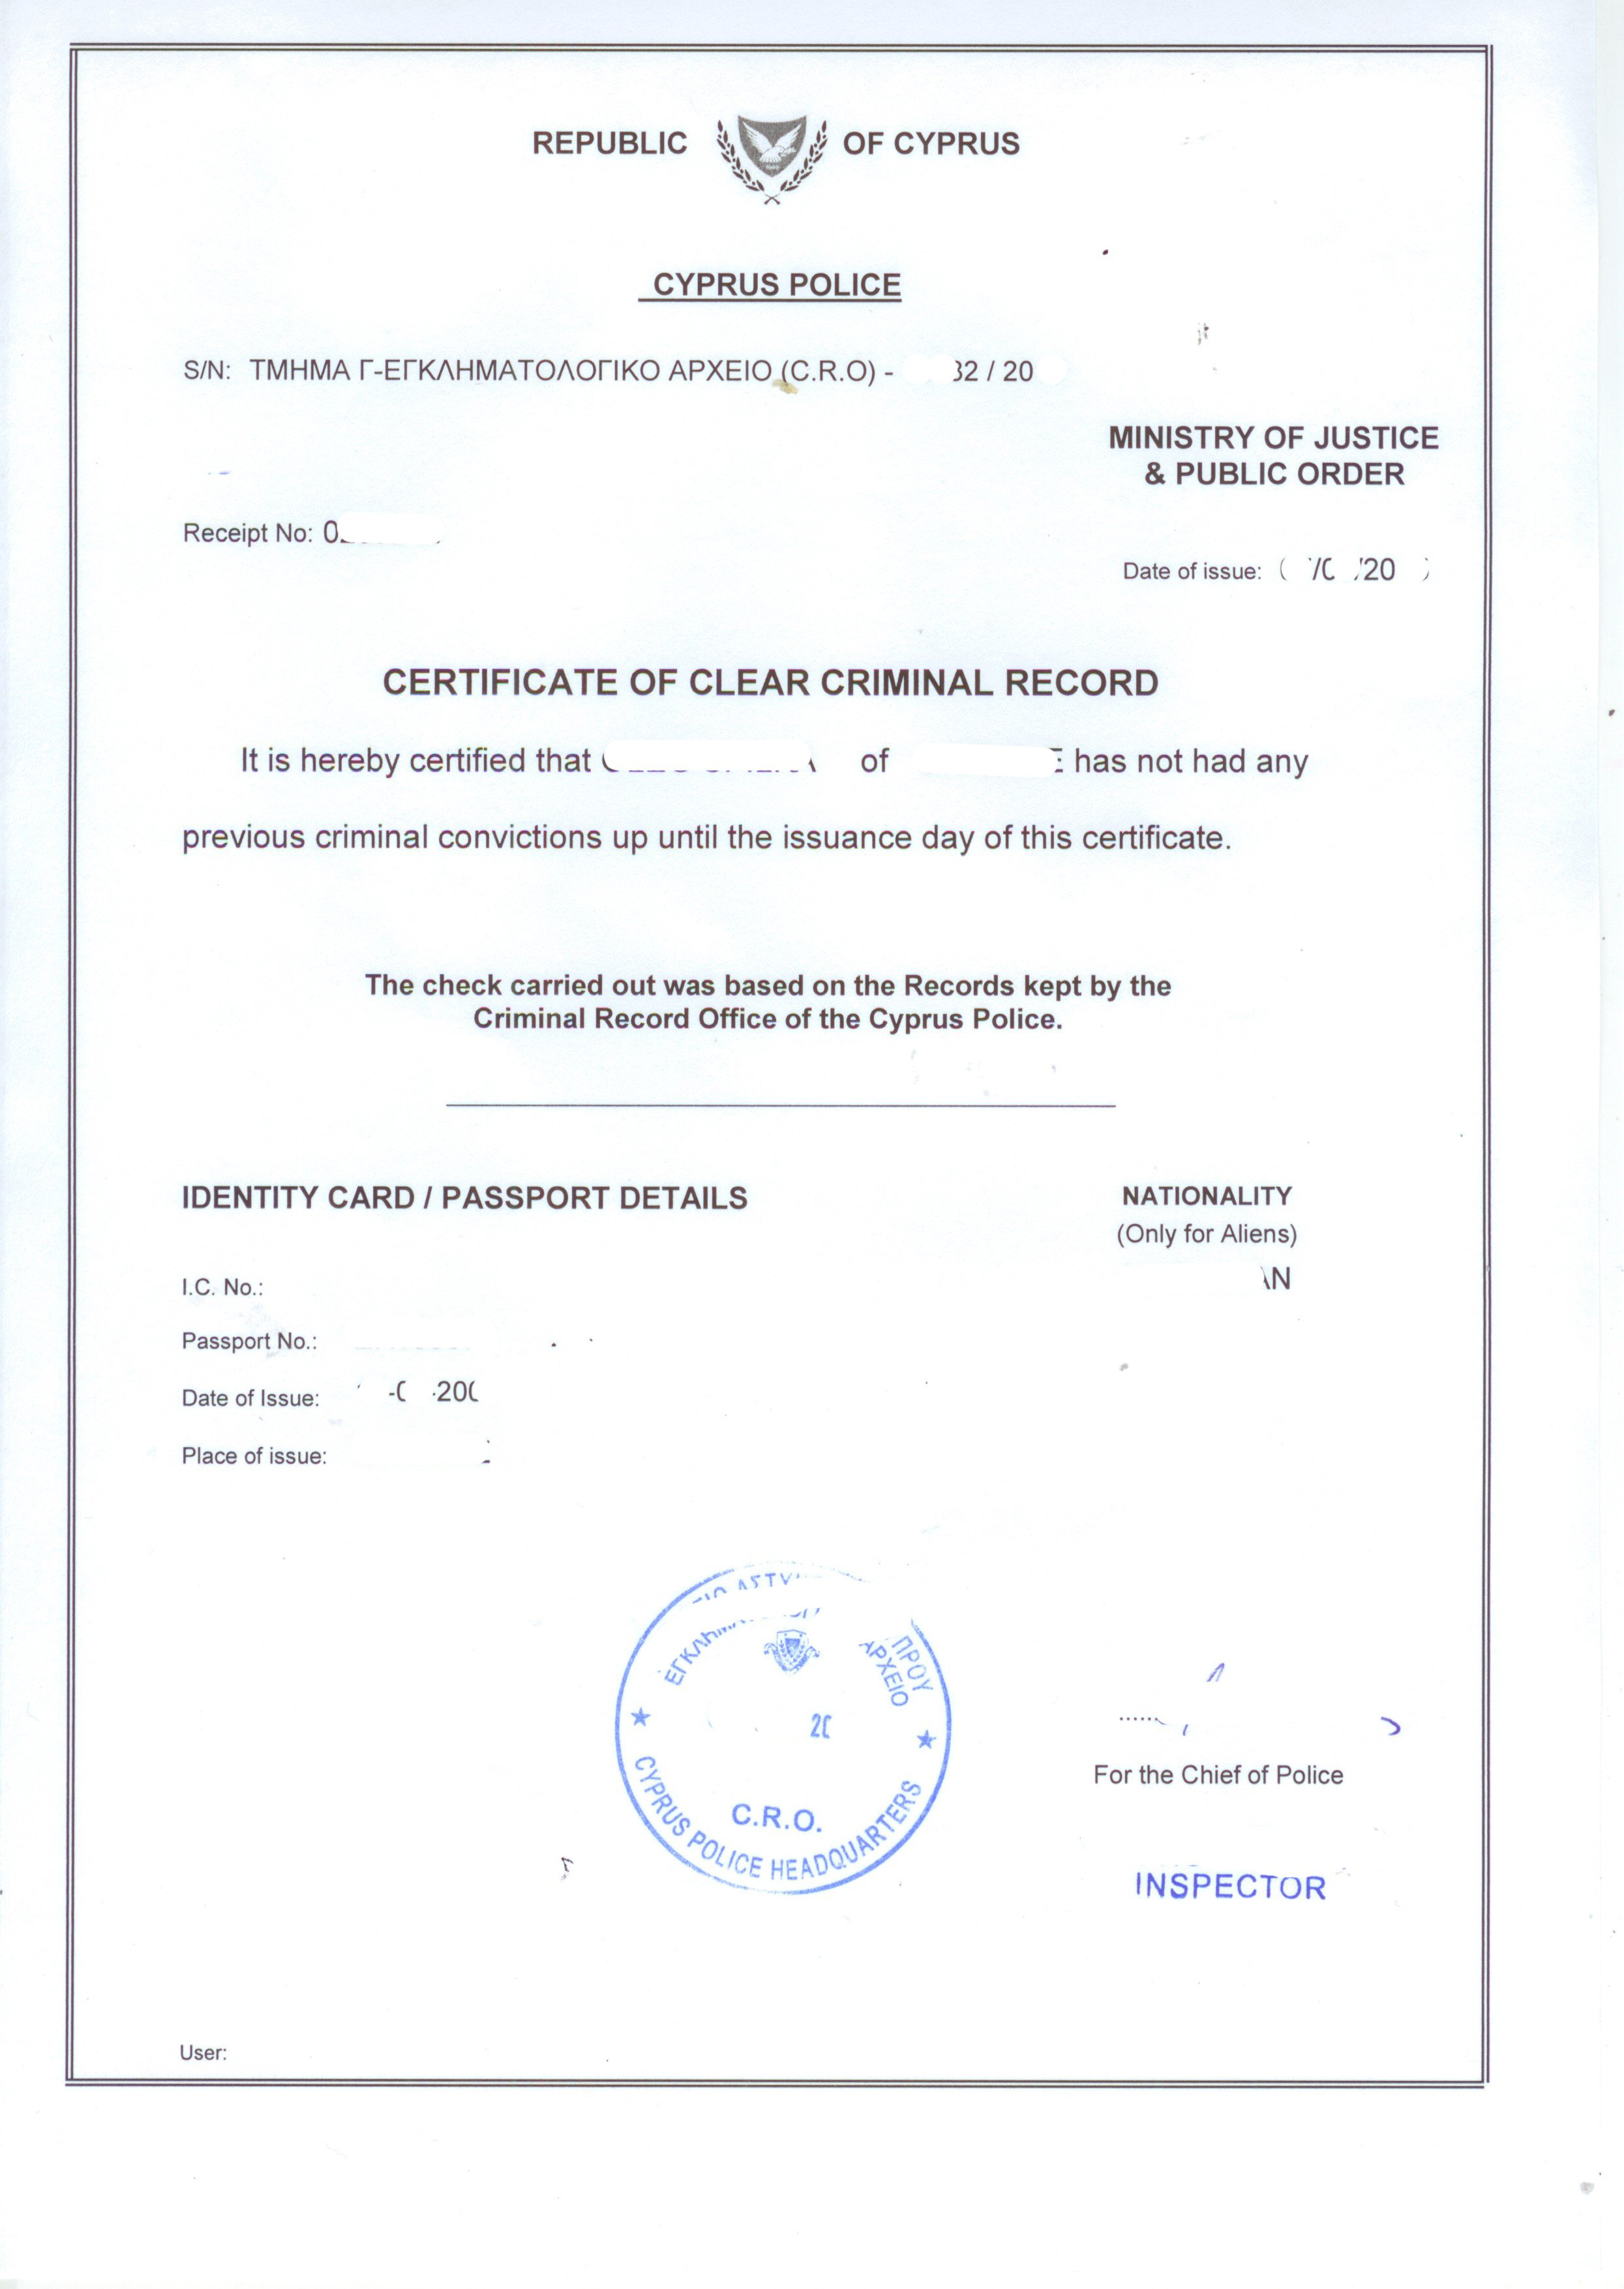 Criminal record certificate or police clearance certificate in cyprus certificate of clear criminal record cyprus police certificate in english thecheapjerseys Image collections